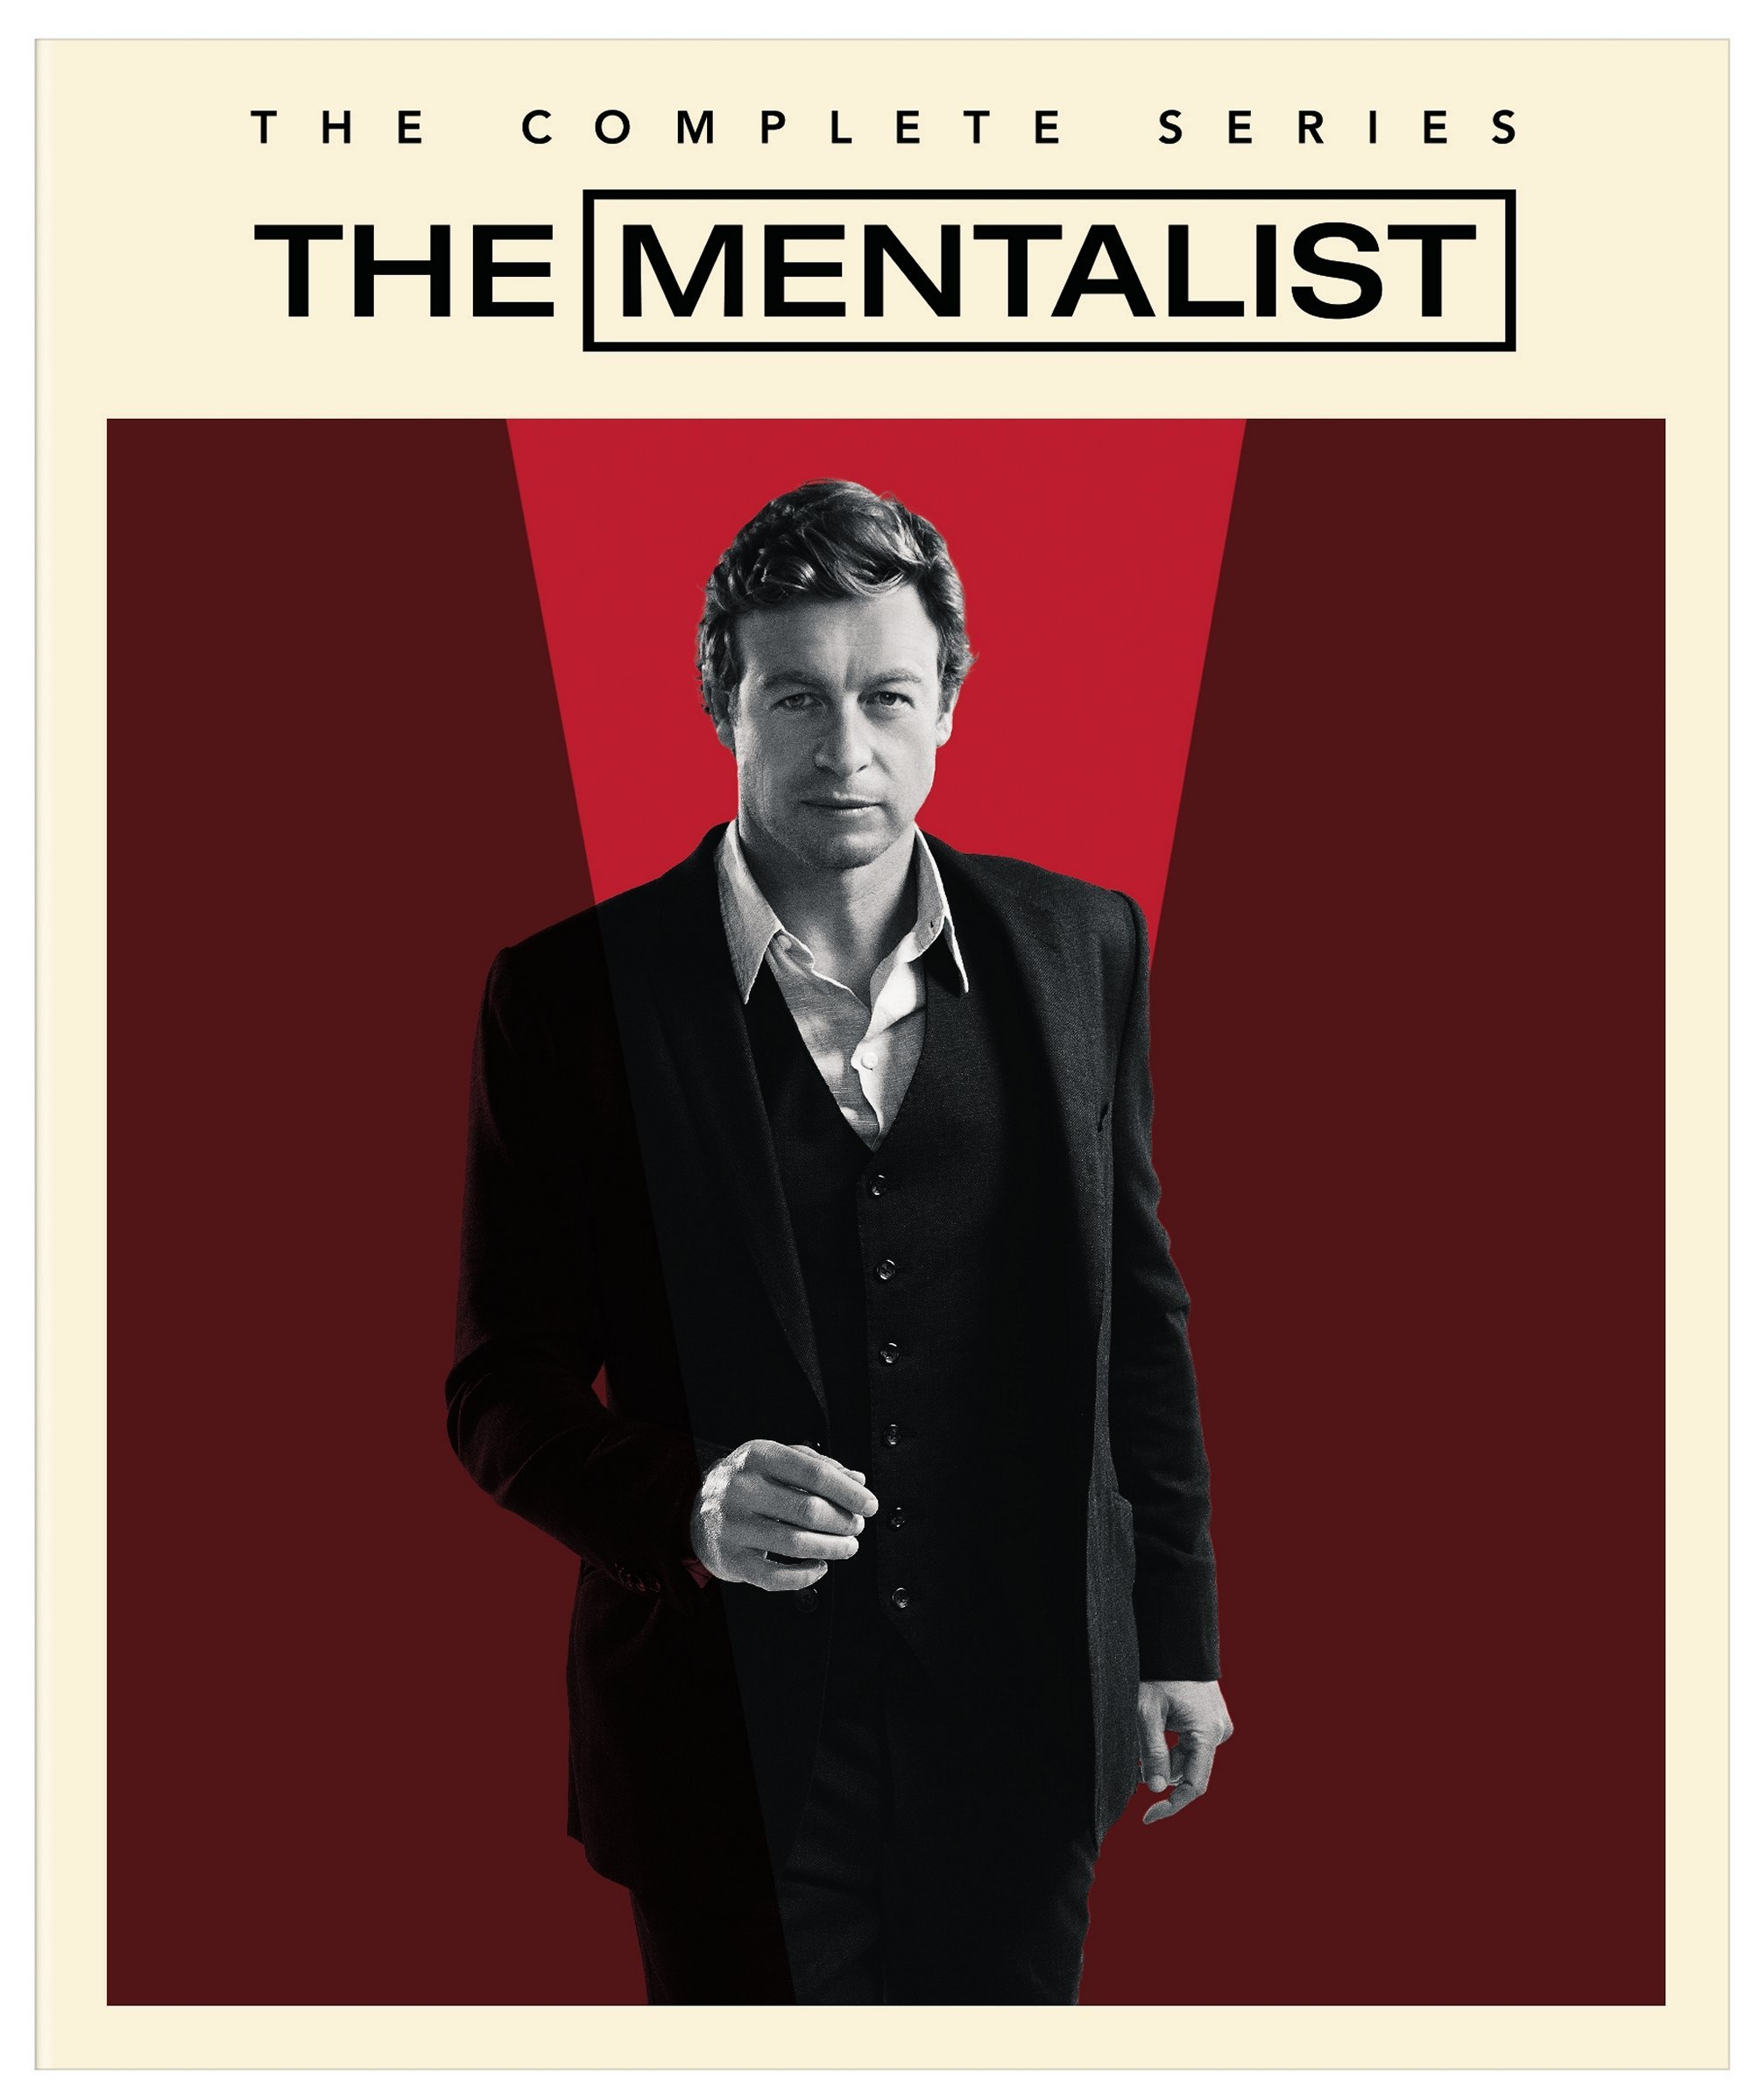 The Mentalist Complete Series Box Set (Seasons 1-7) (Dvd) 4